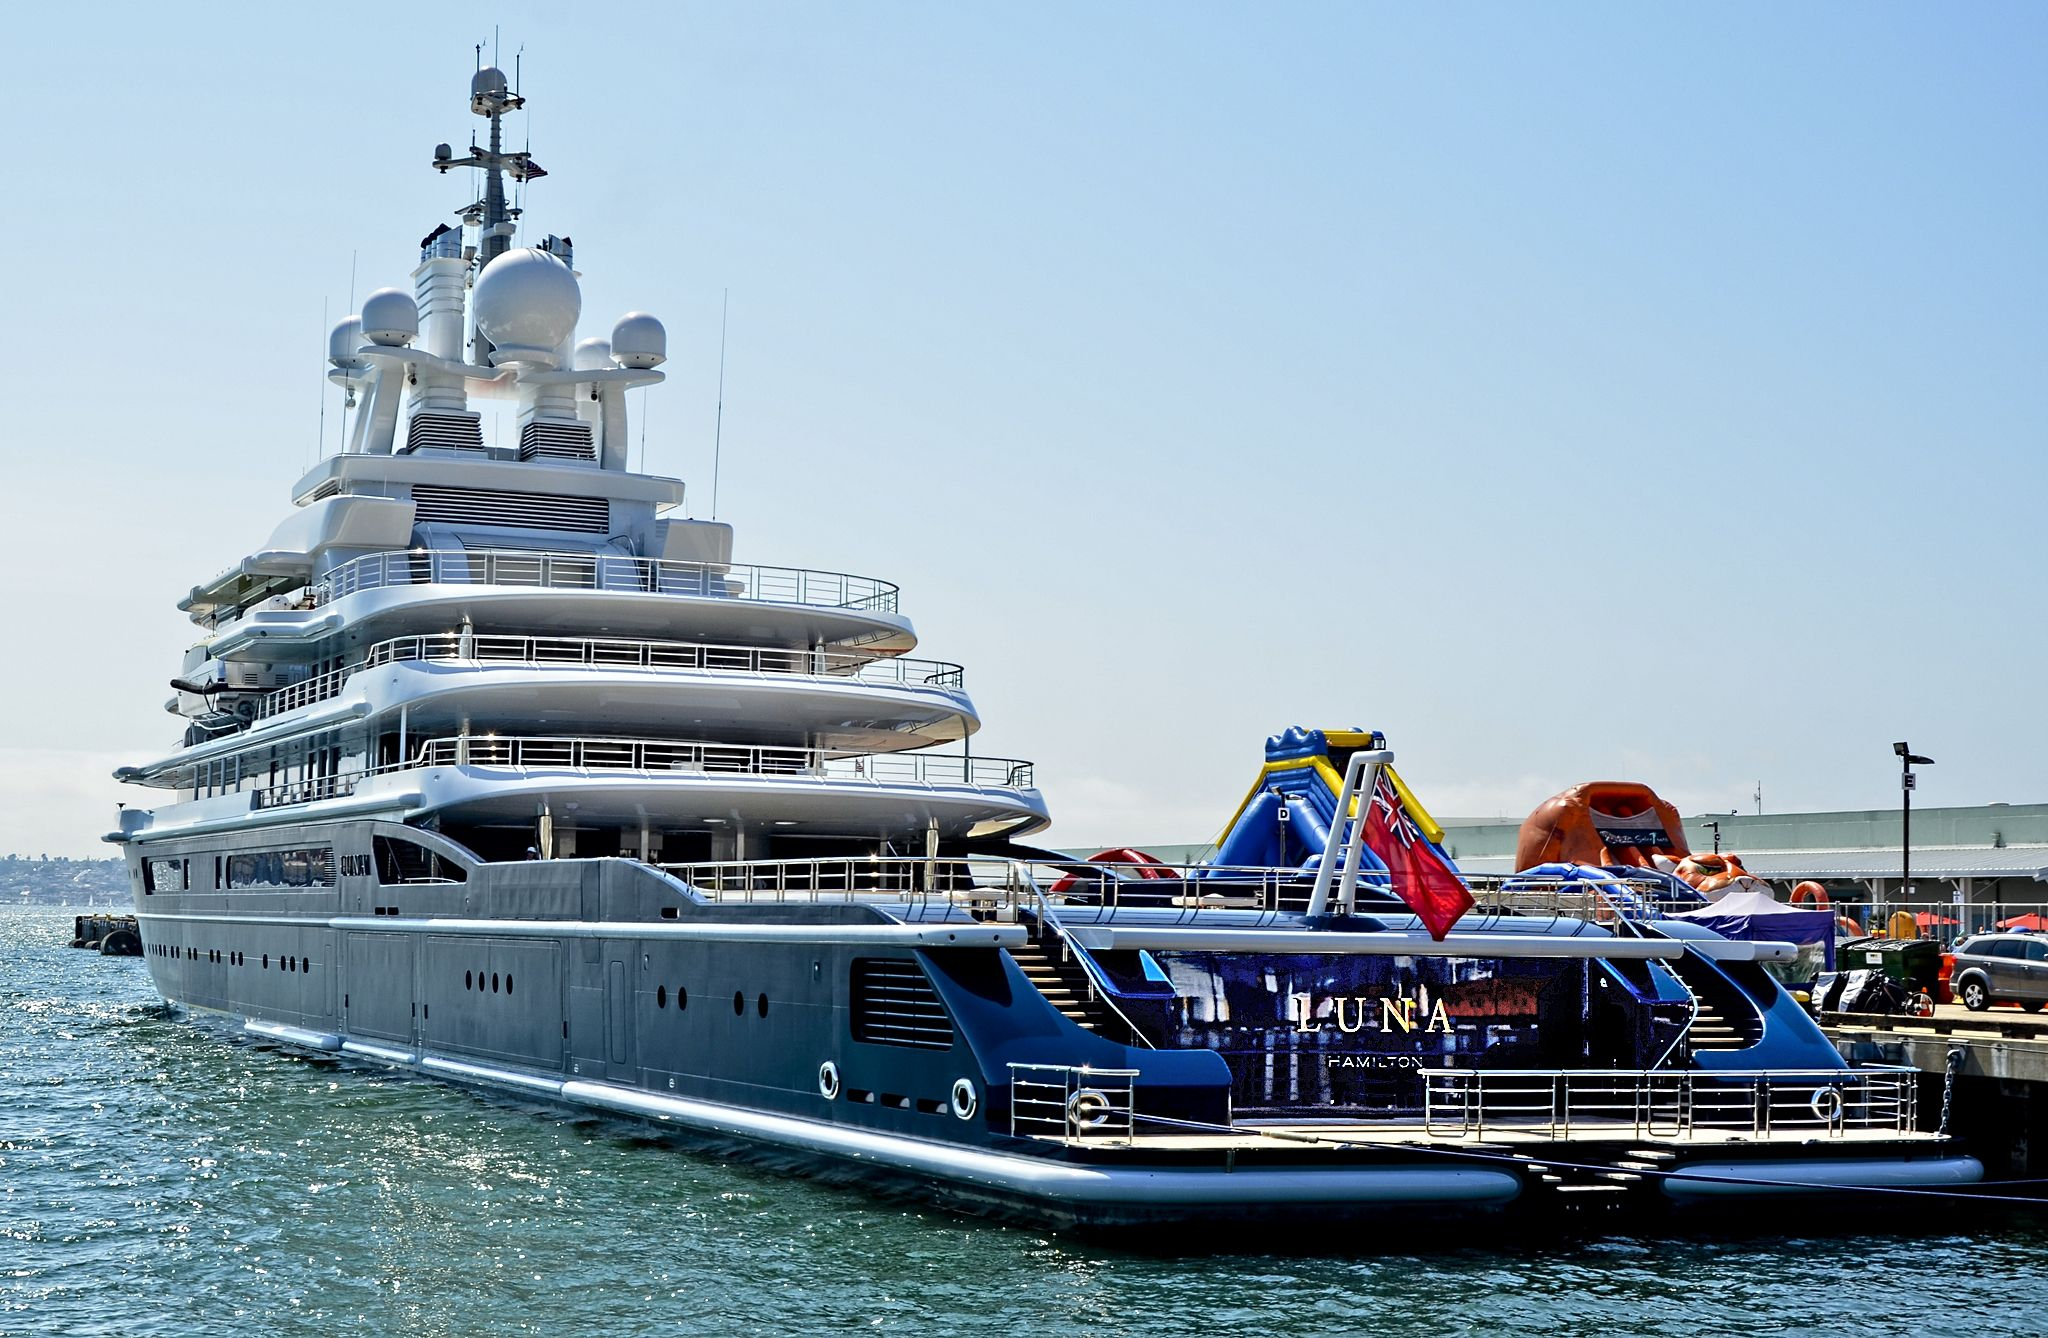 540 Million Yacht Of Us Blacklisted Russian Oligarch Impounded In